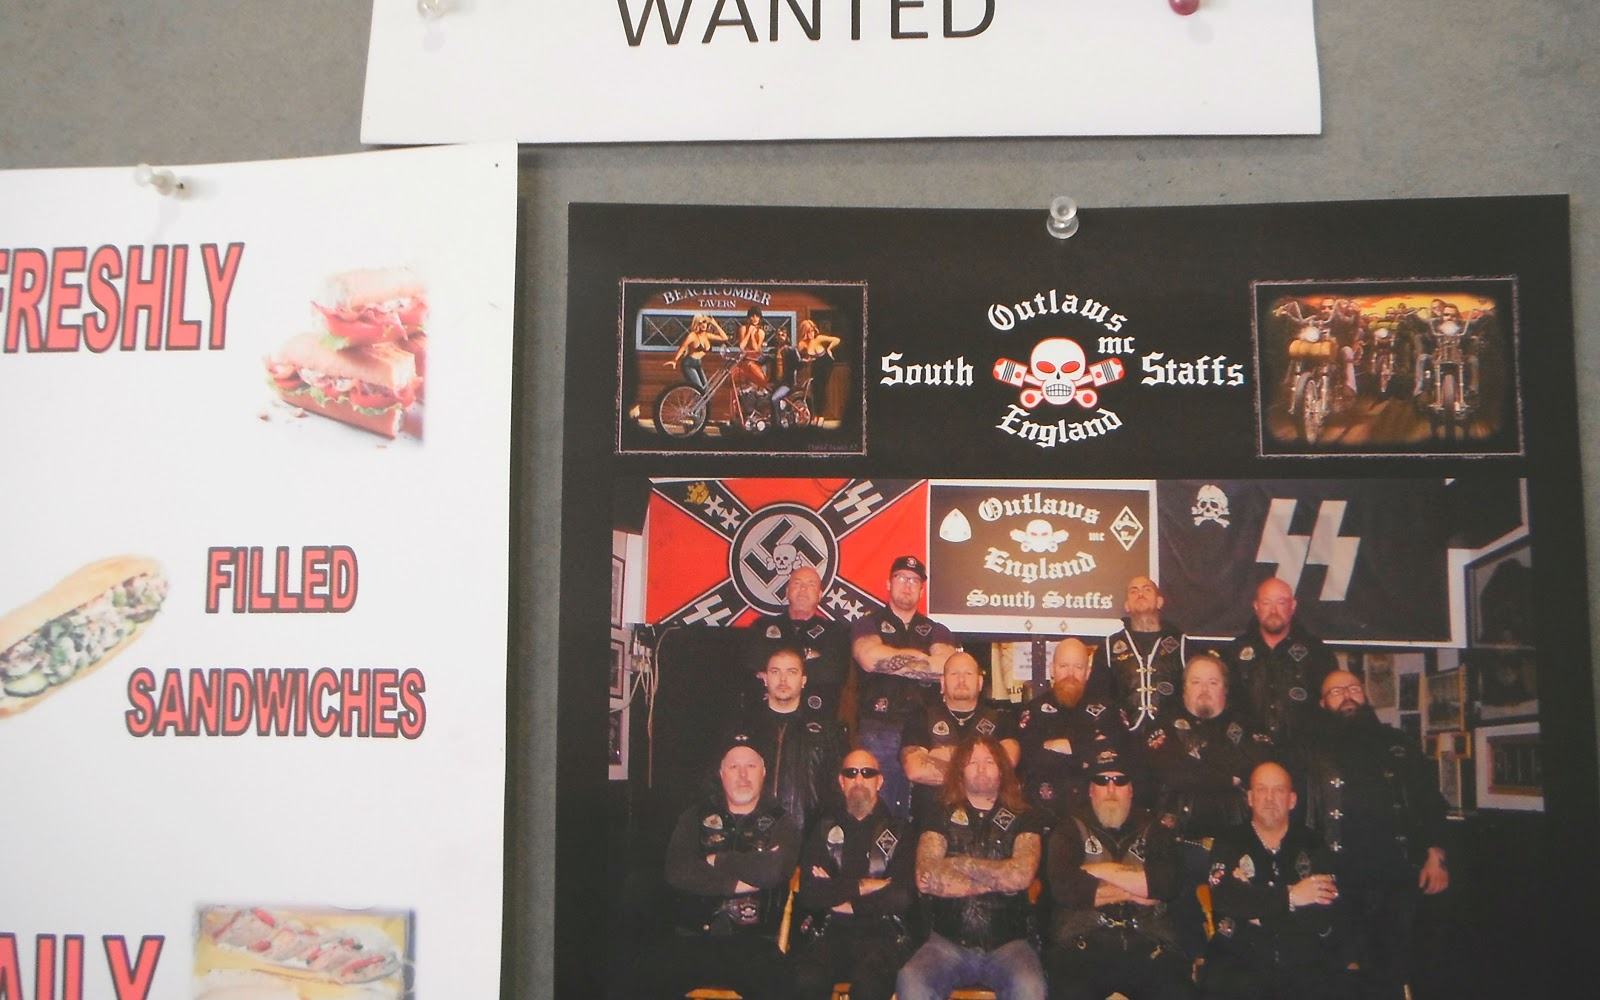 The 2015 Annual Photo of the South Staffs Outlaws Bikers